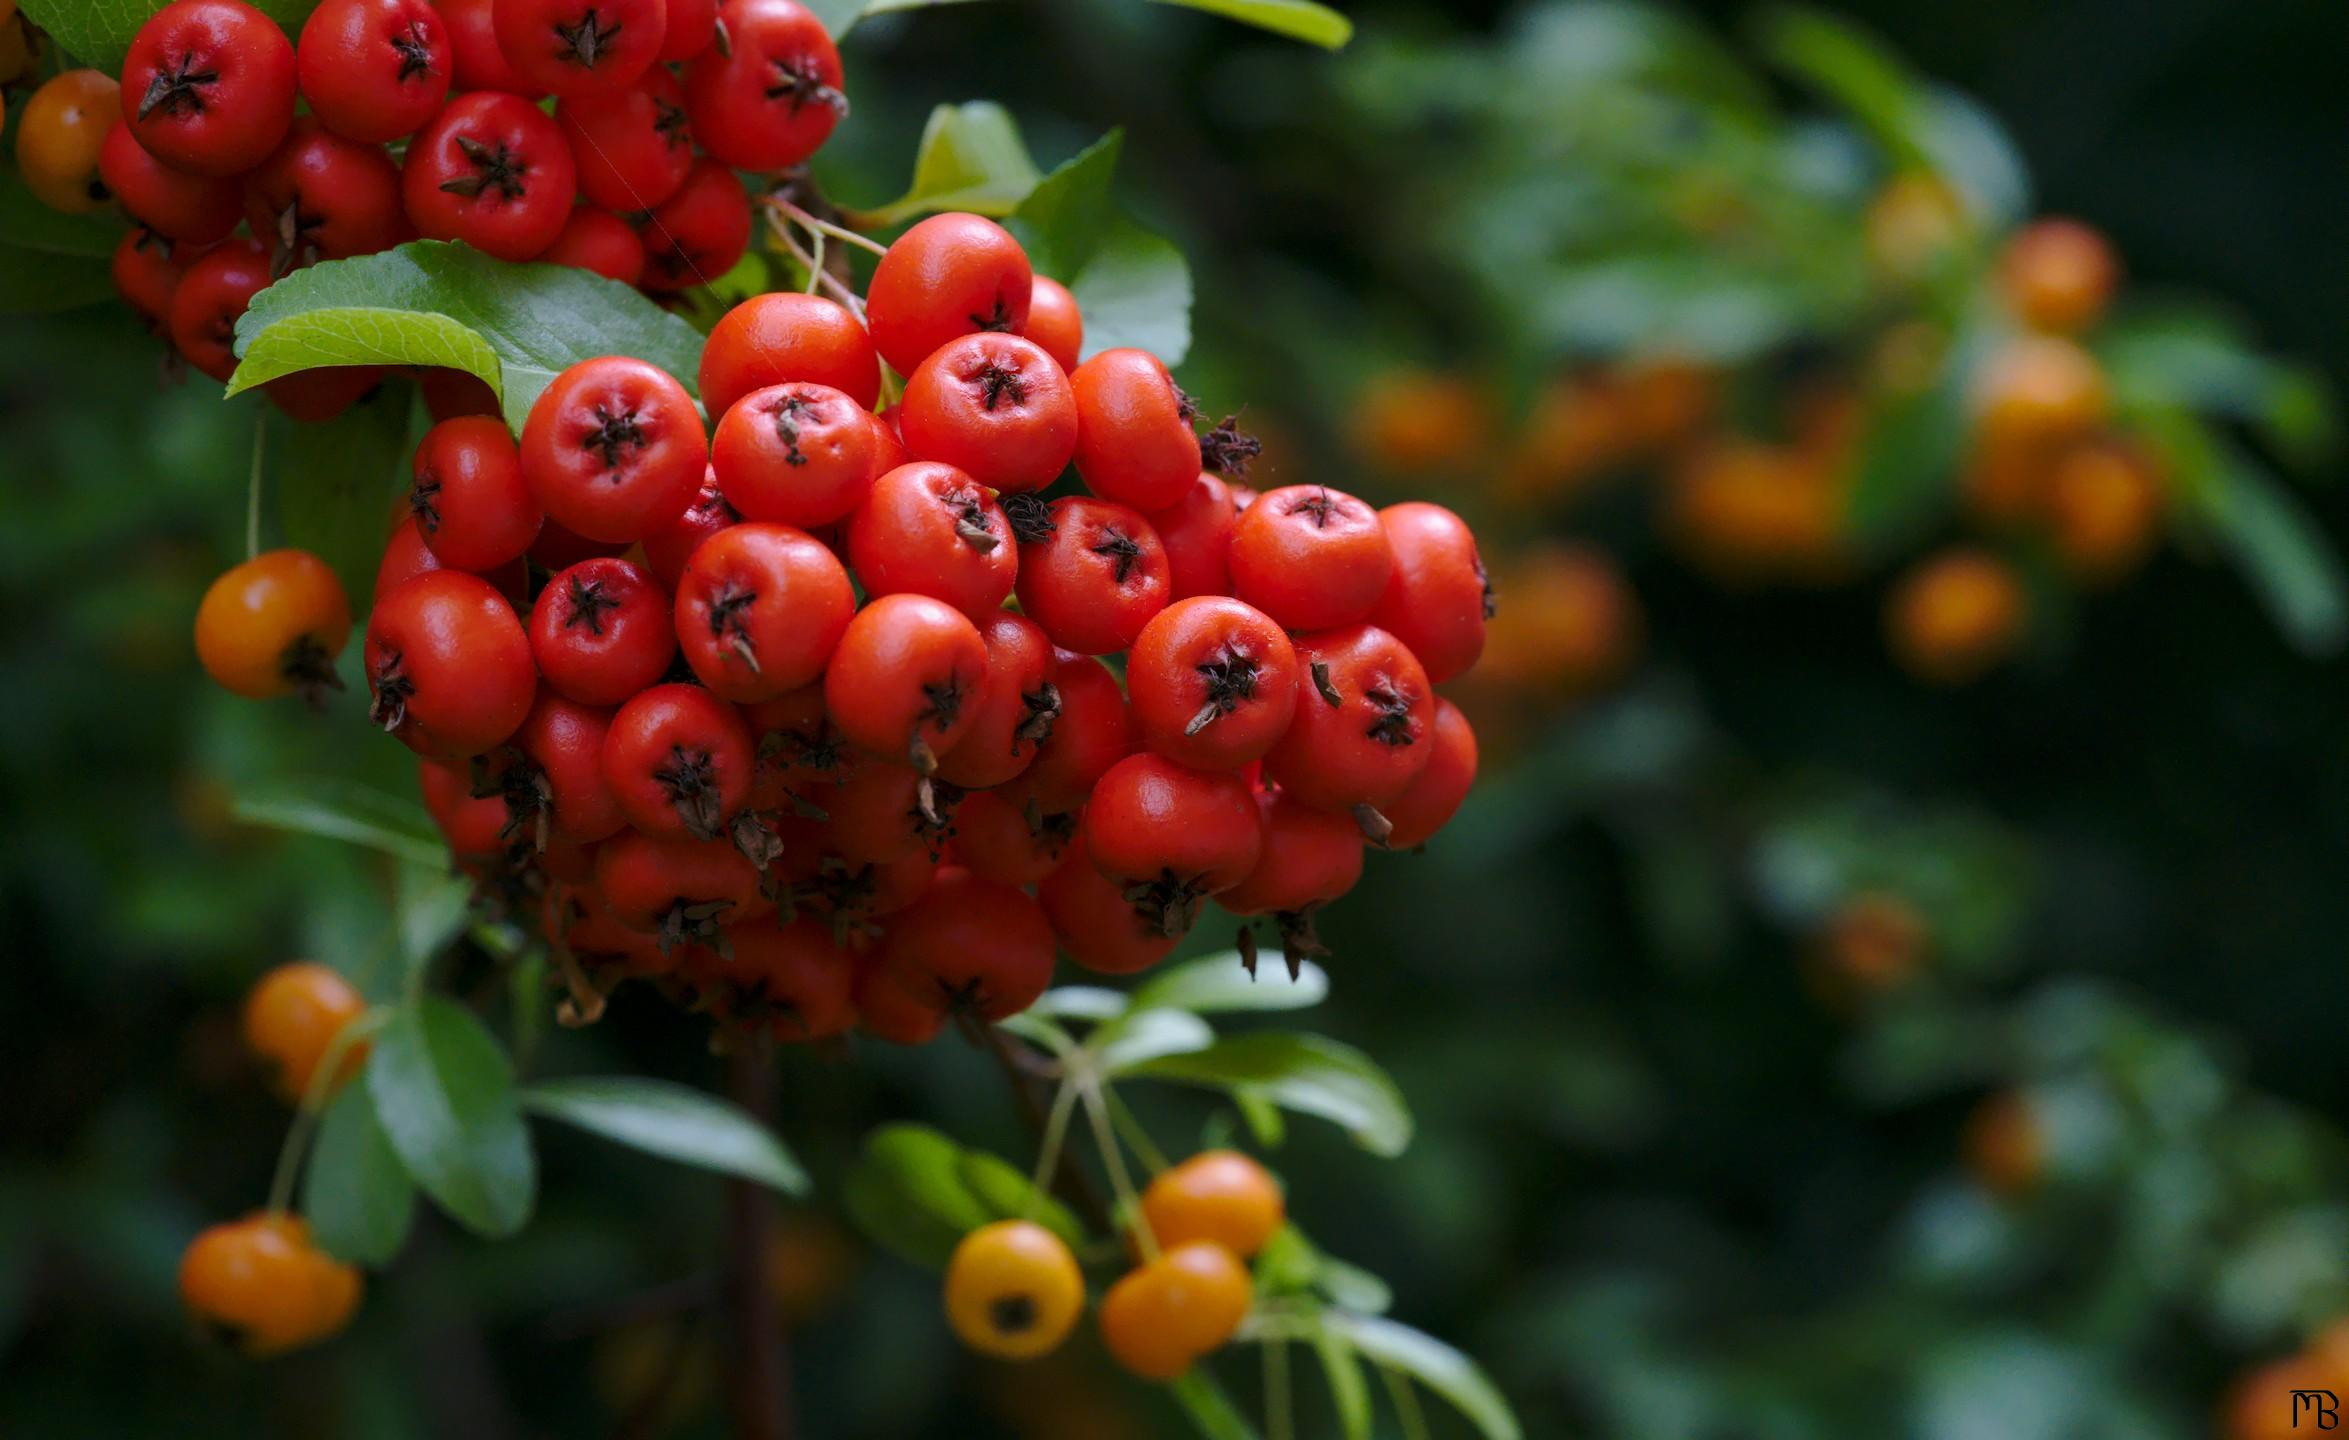 Berries on a tree